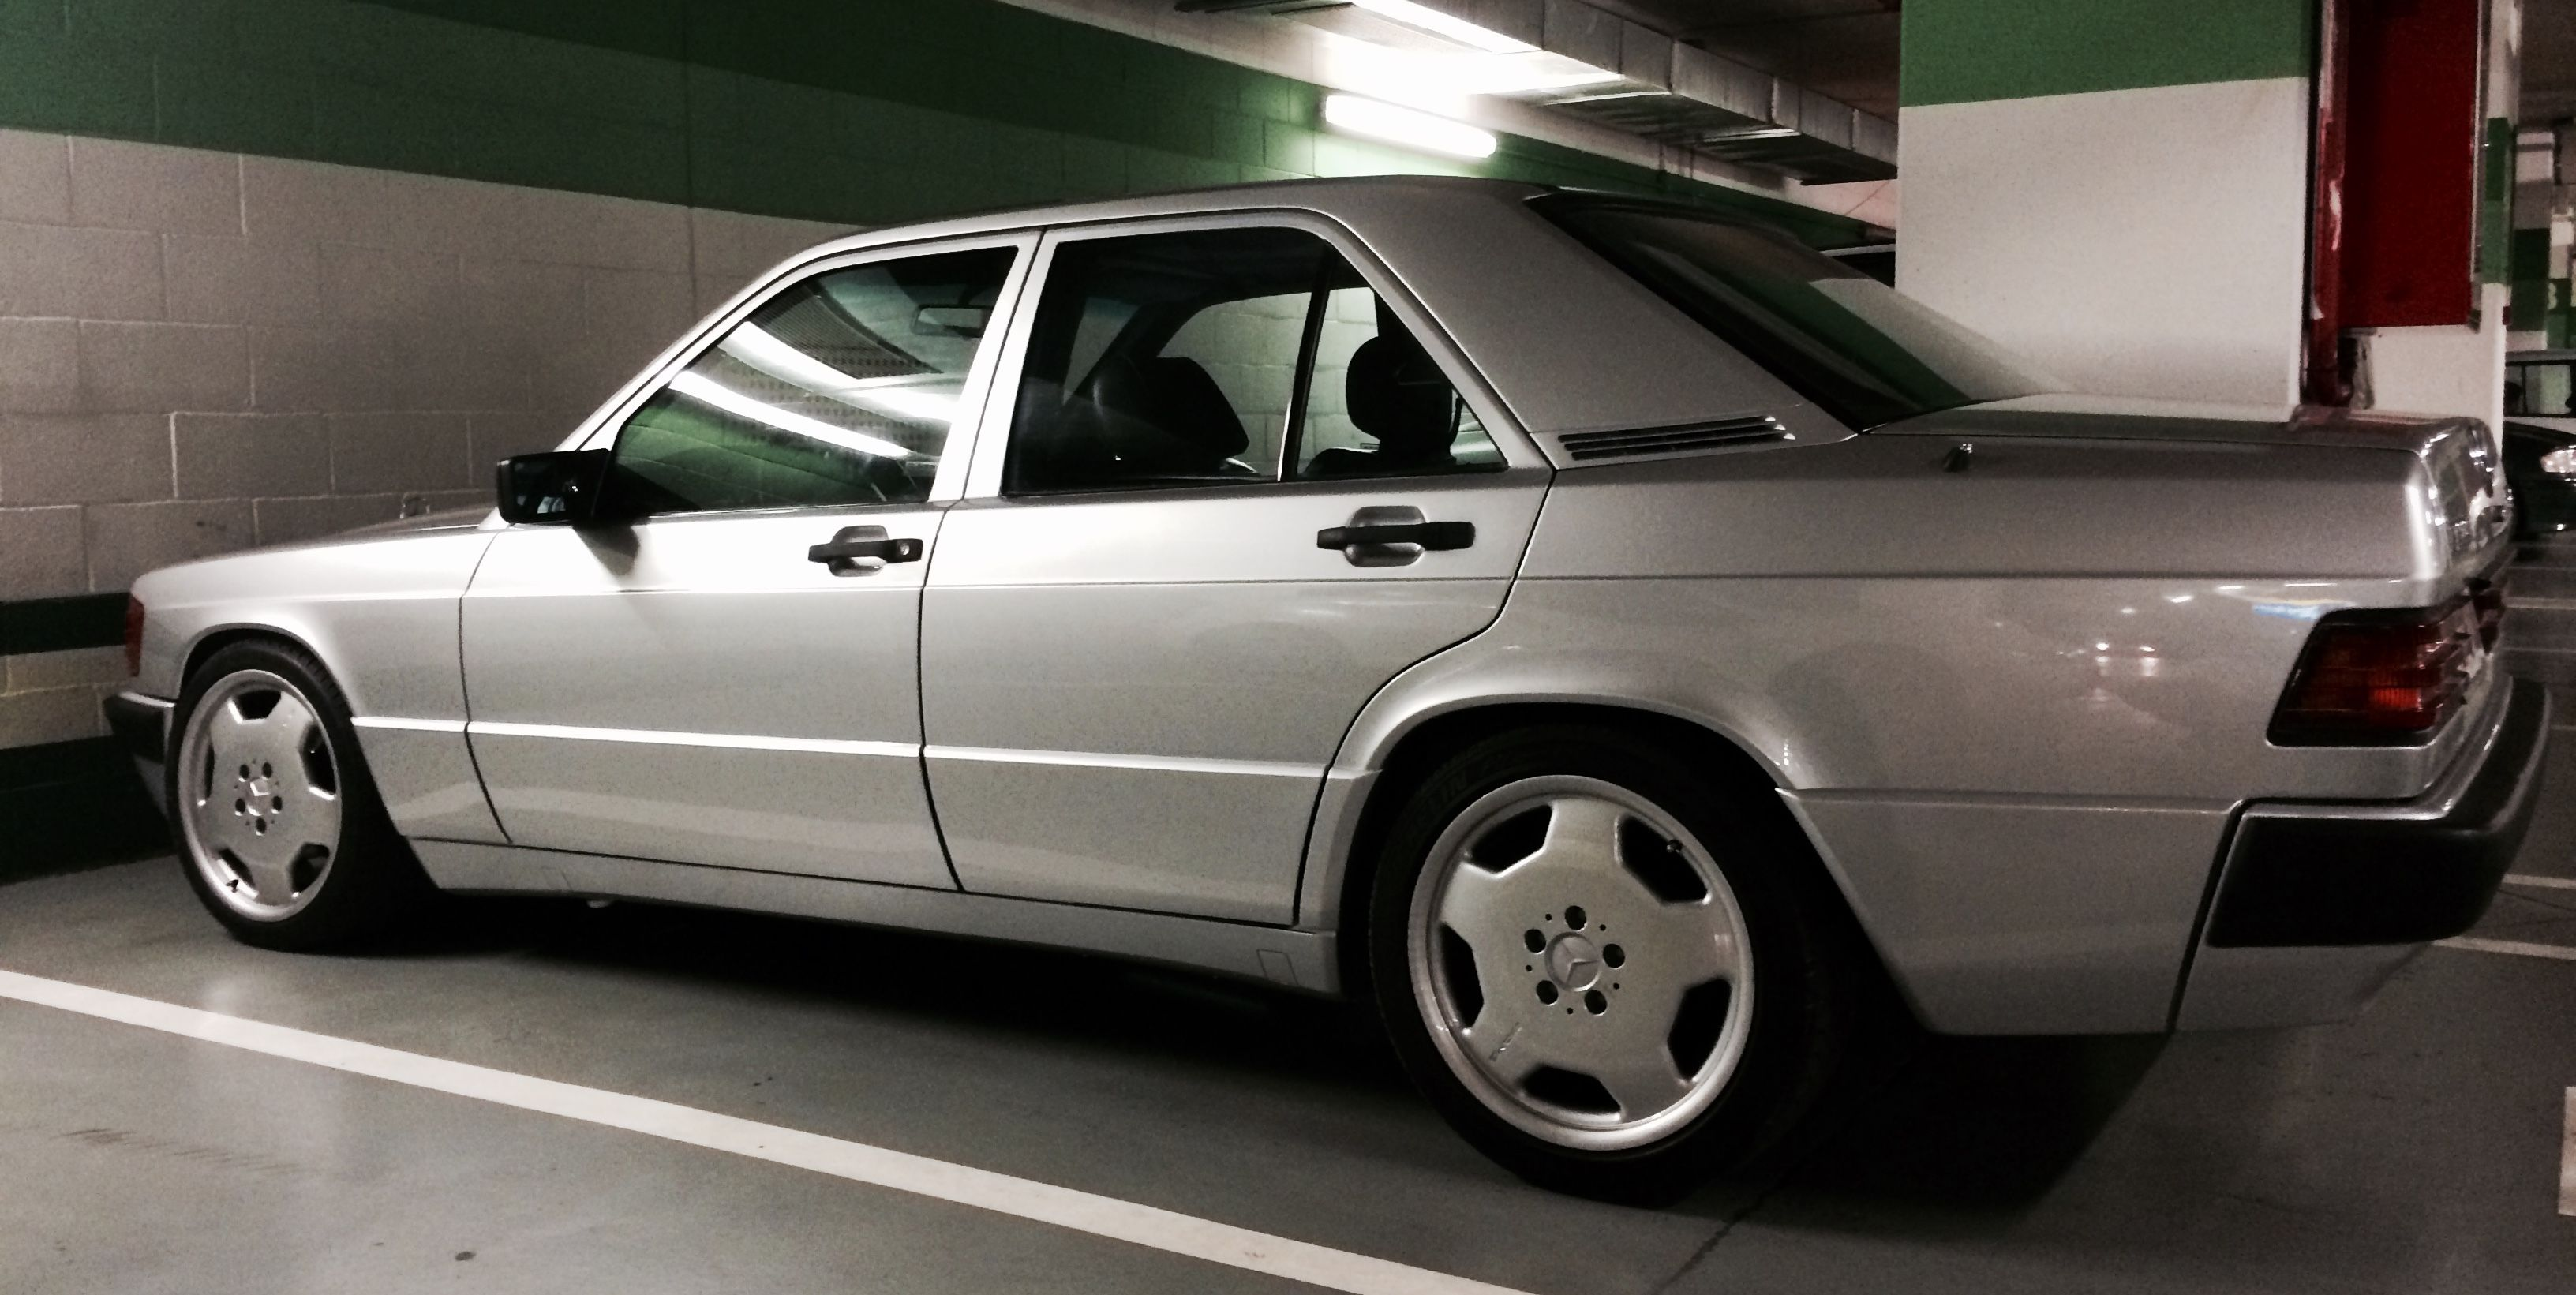 Mercedes-Benz 190E 2.3 AMG Alcarrian Concept: ral 722, Monoblock 17 on